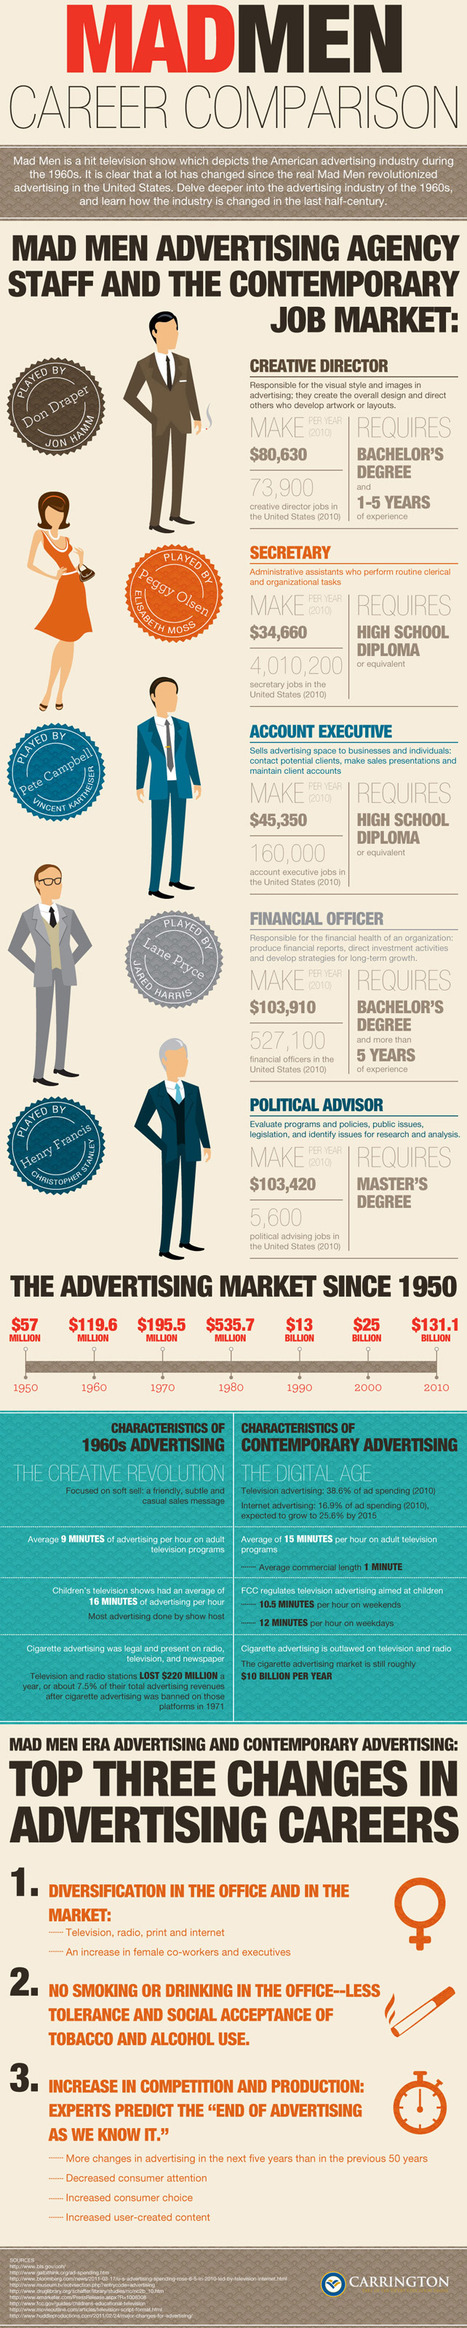 What Would Don Draper's Salary Be? | Advertising and Marketing Wisdom | AtoZ-Facebook,Twitter, Linkedin Marketing Social media2 | Scoop.it